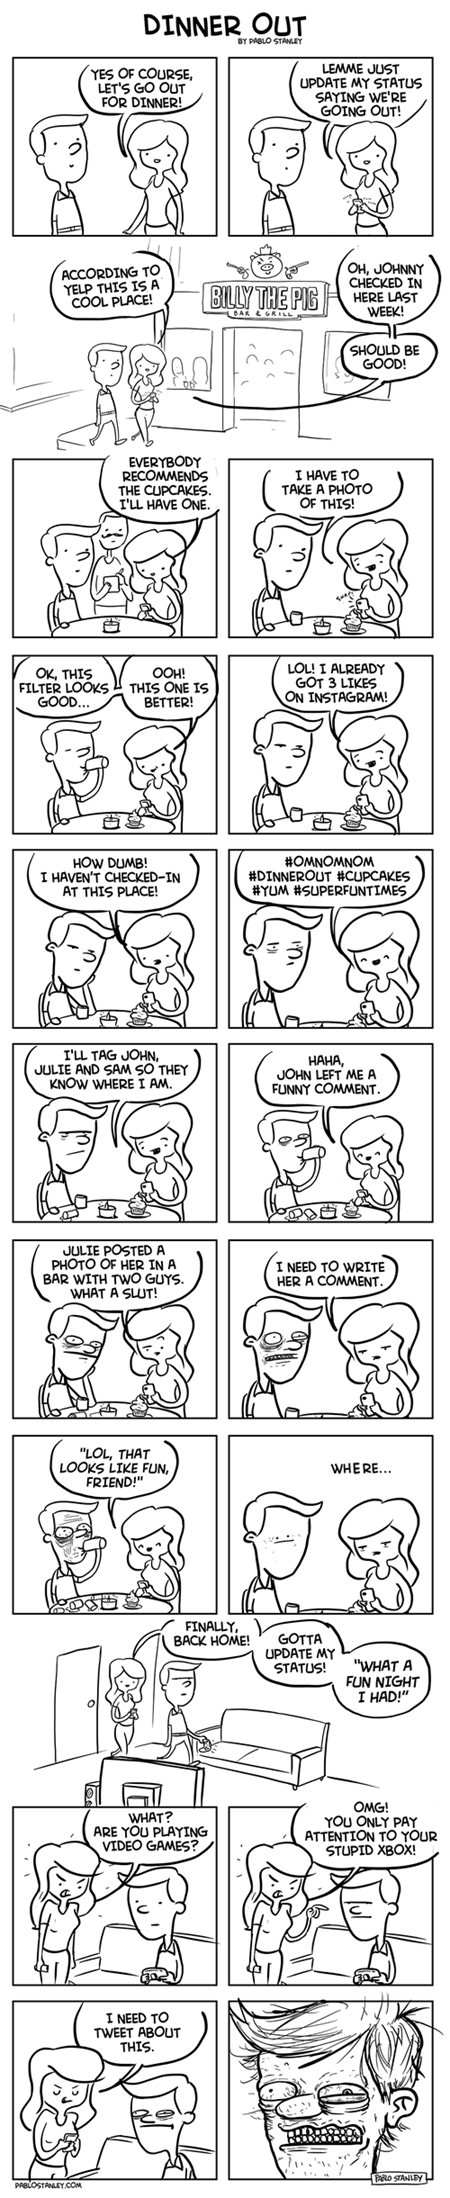 relationships social media the inevitable downfall of humanity funny web comics - 7859860224